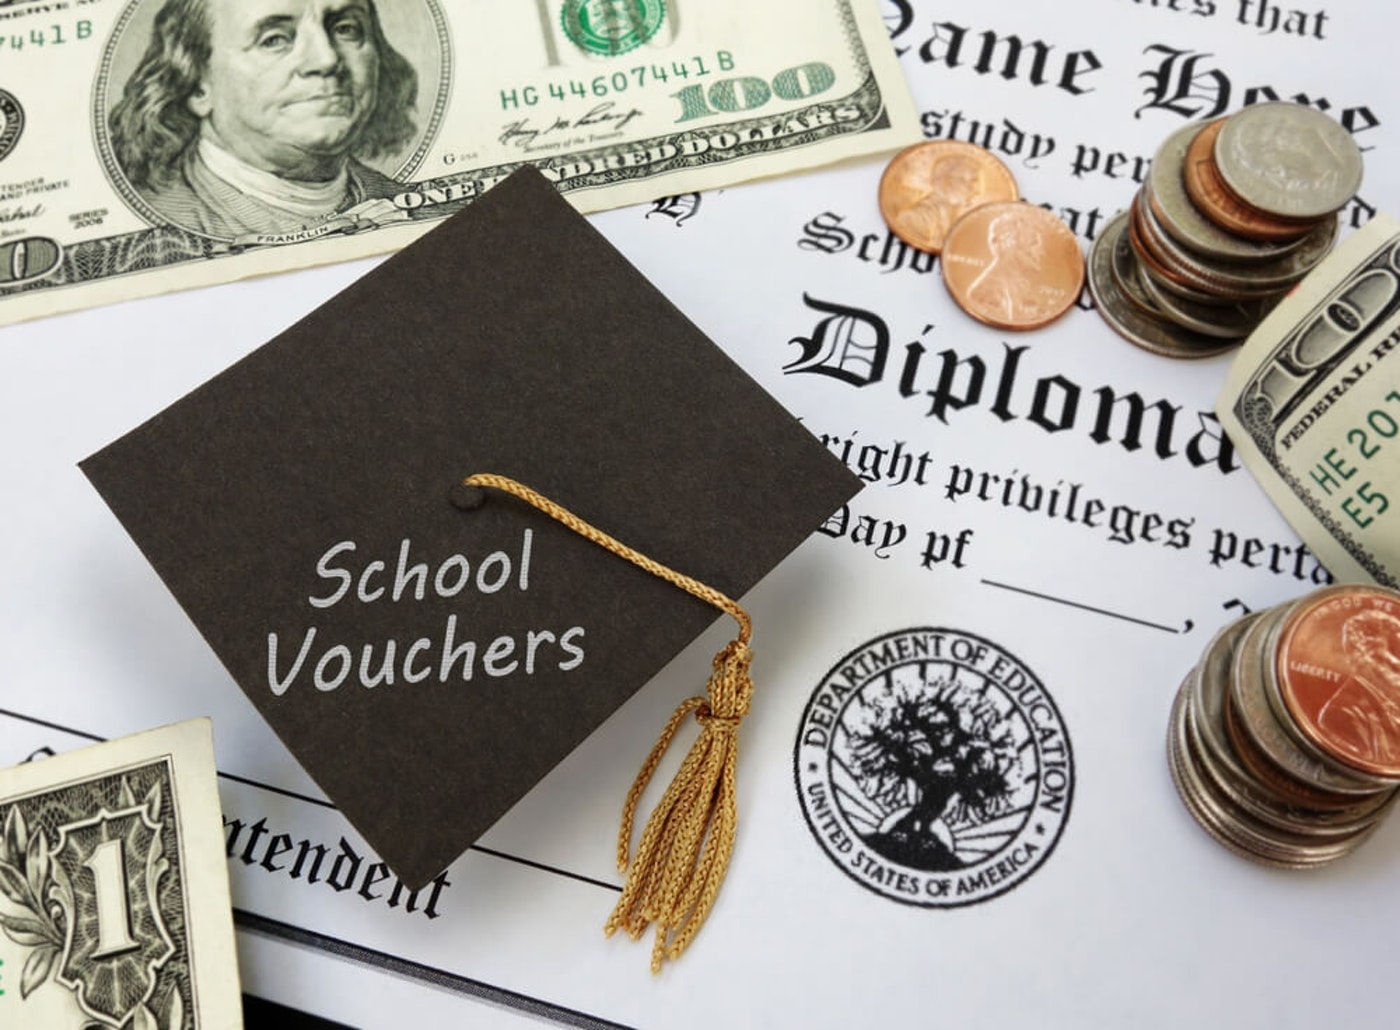 Seven NC plaintiffs are challenging the constitutionality of the state's Opportunity Scholarship voucher program for private schools. (Image via Shutterstock)